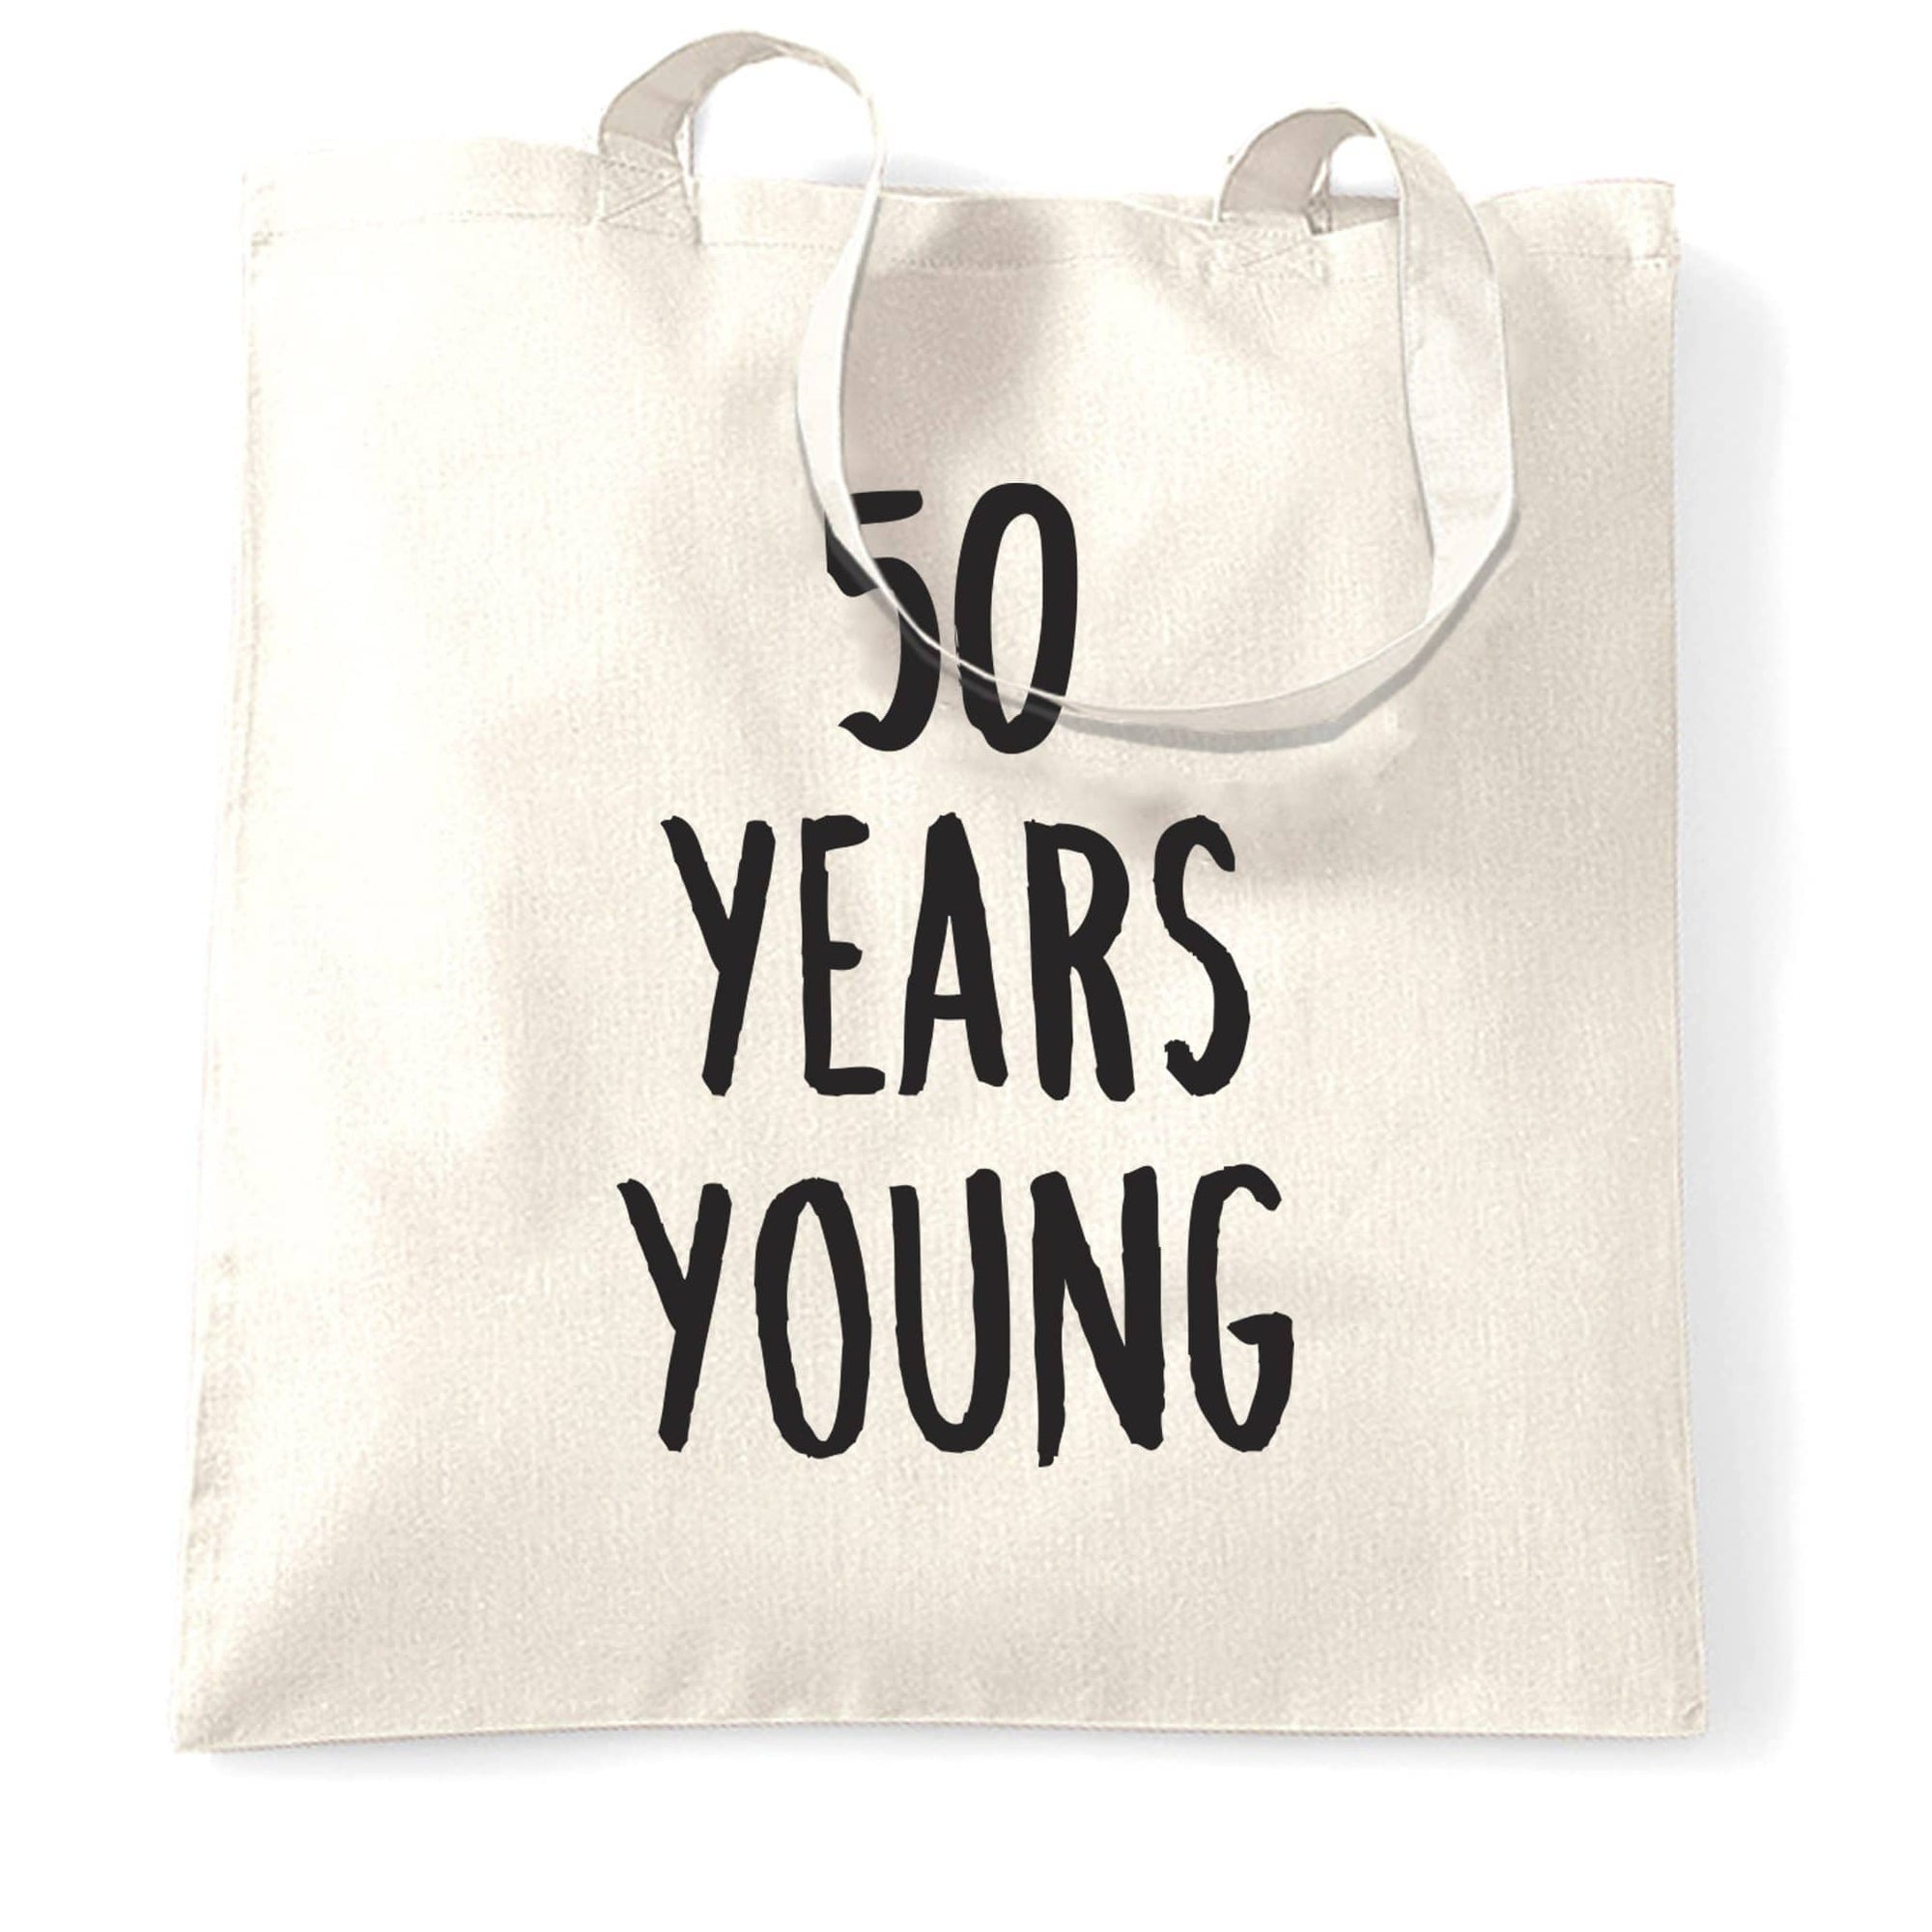 50th Birthday Joke Tote Bag 50 Years Young Novelty Text